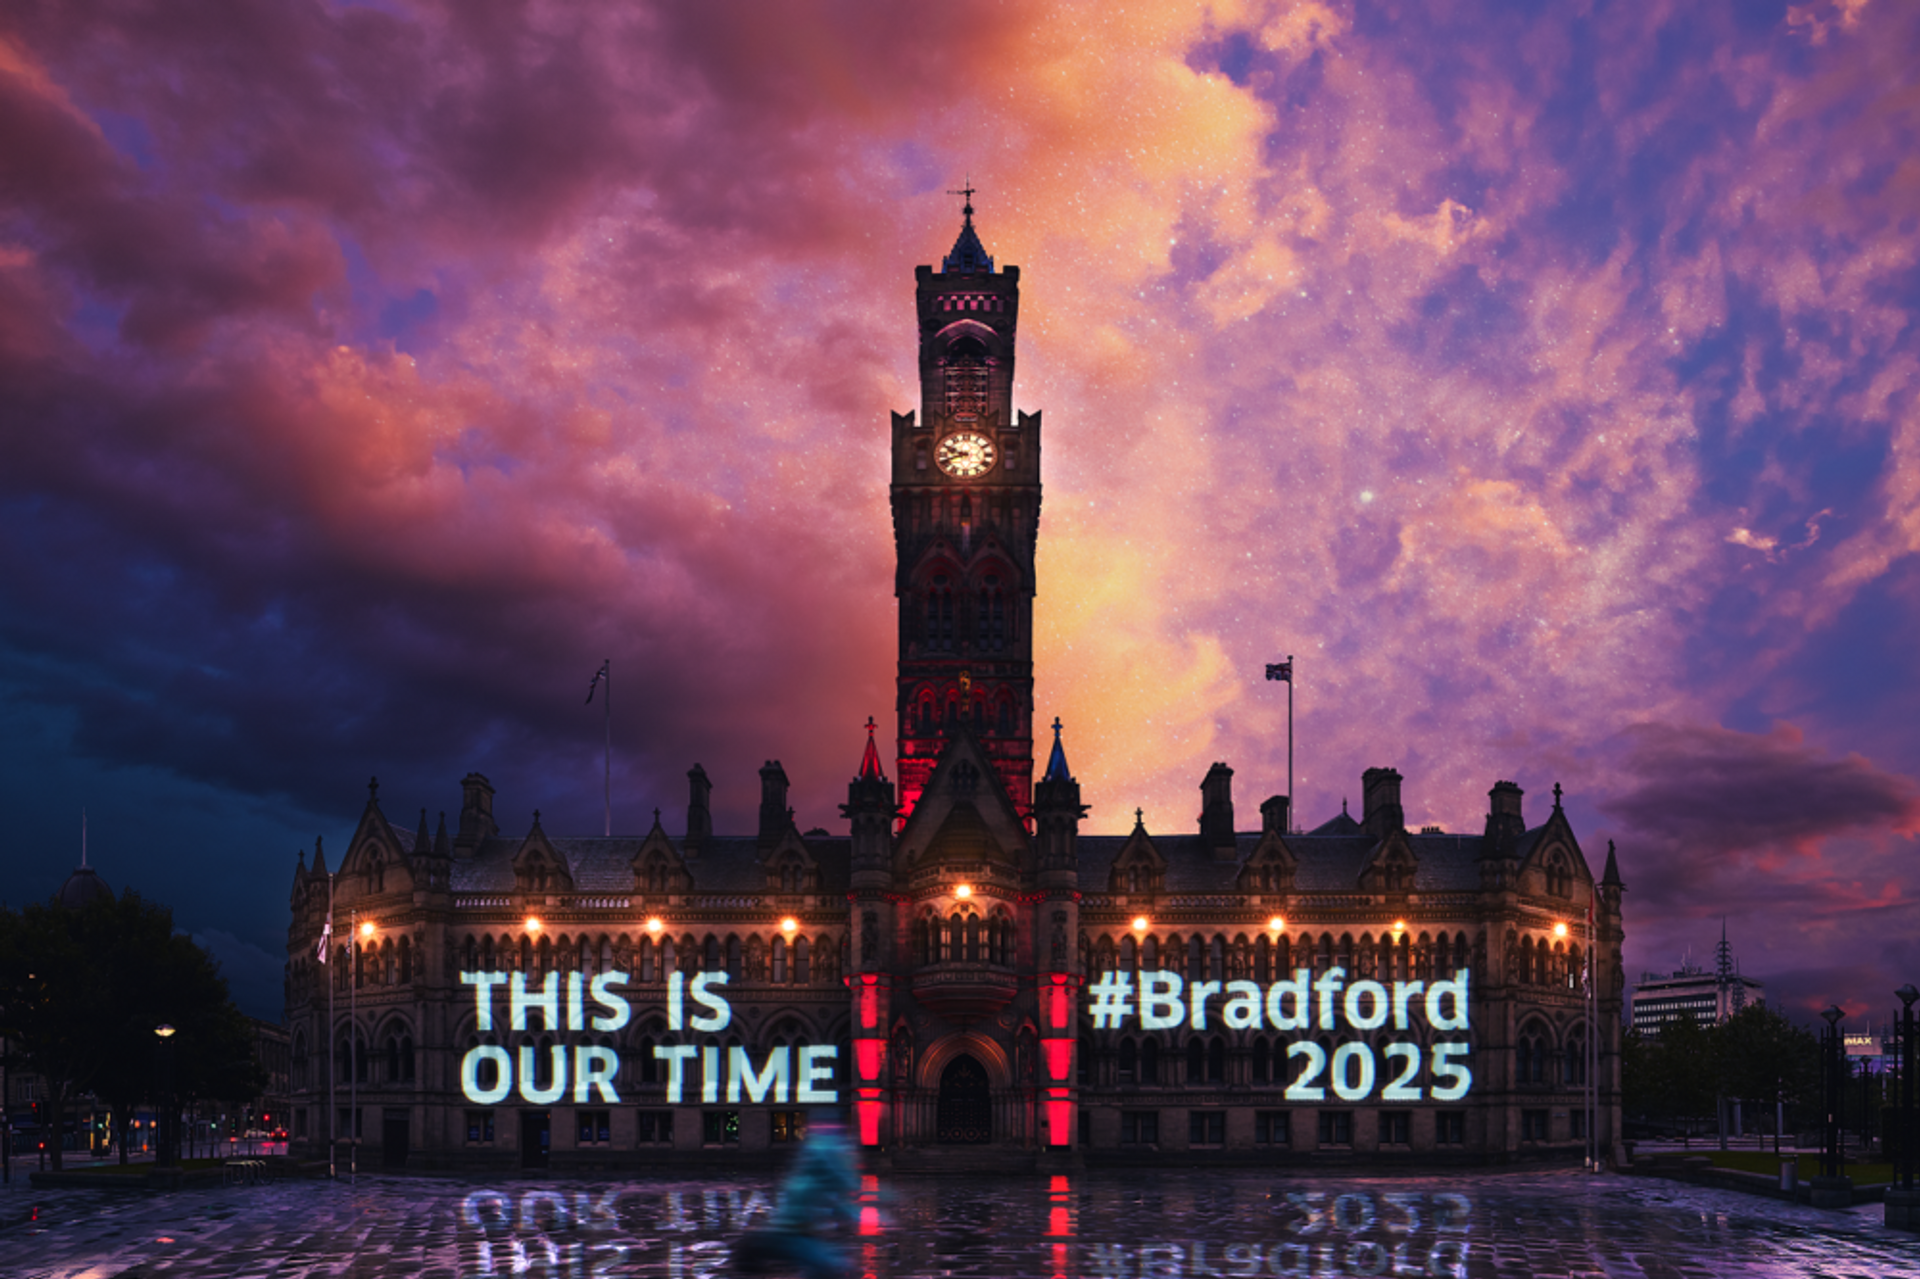 Bradford has been longlisted for the title of UK City of Culture 2025. Courtesy of Bradford 2025